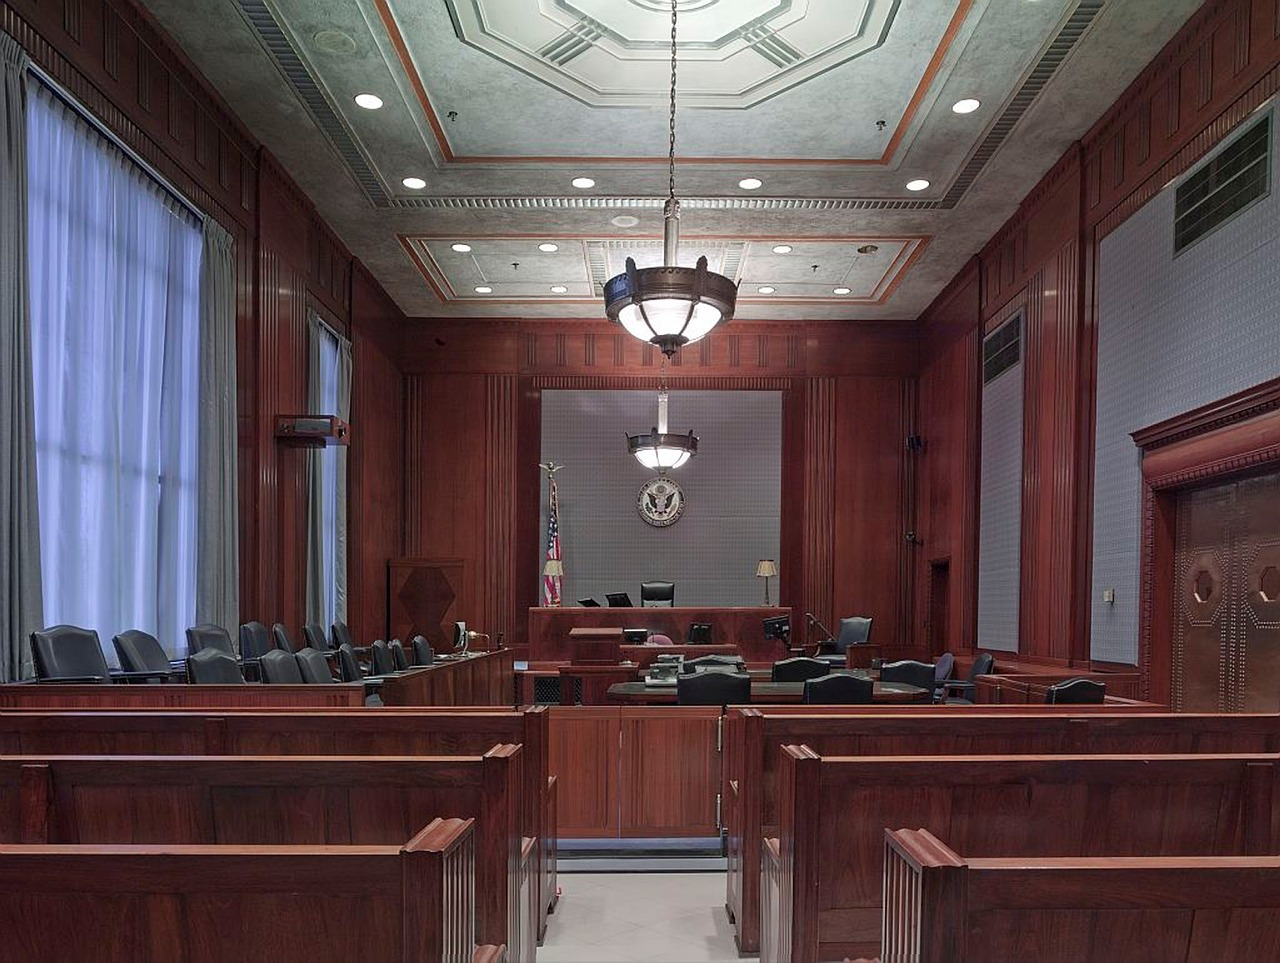 Students participate in mock trials, observe civil and criminal proceedings and take a behind-the-scenes tour of the courthouse.